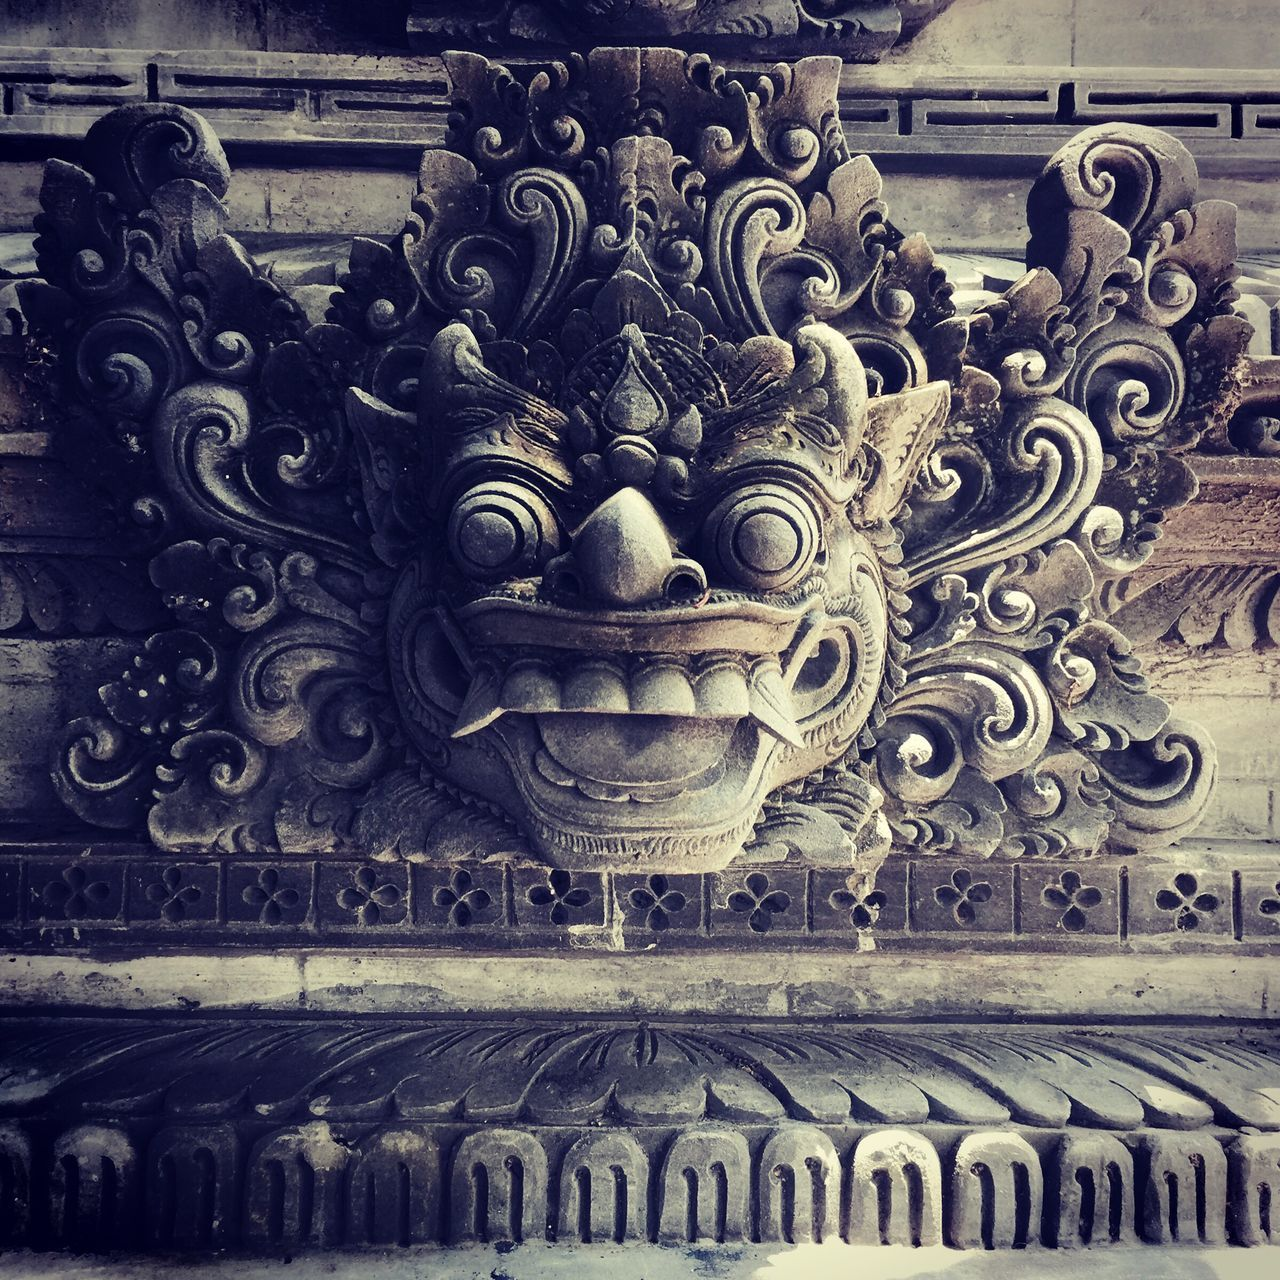 creativity, art and craft, day, carving - craft product, sculpture, no people, outdoors, close-up, building exterior